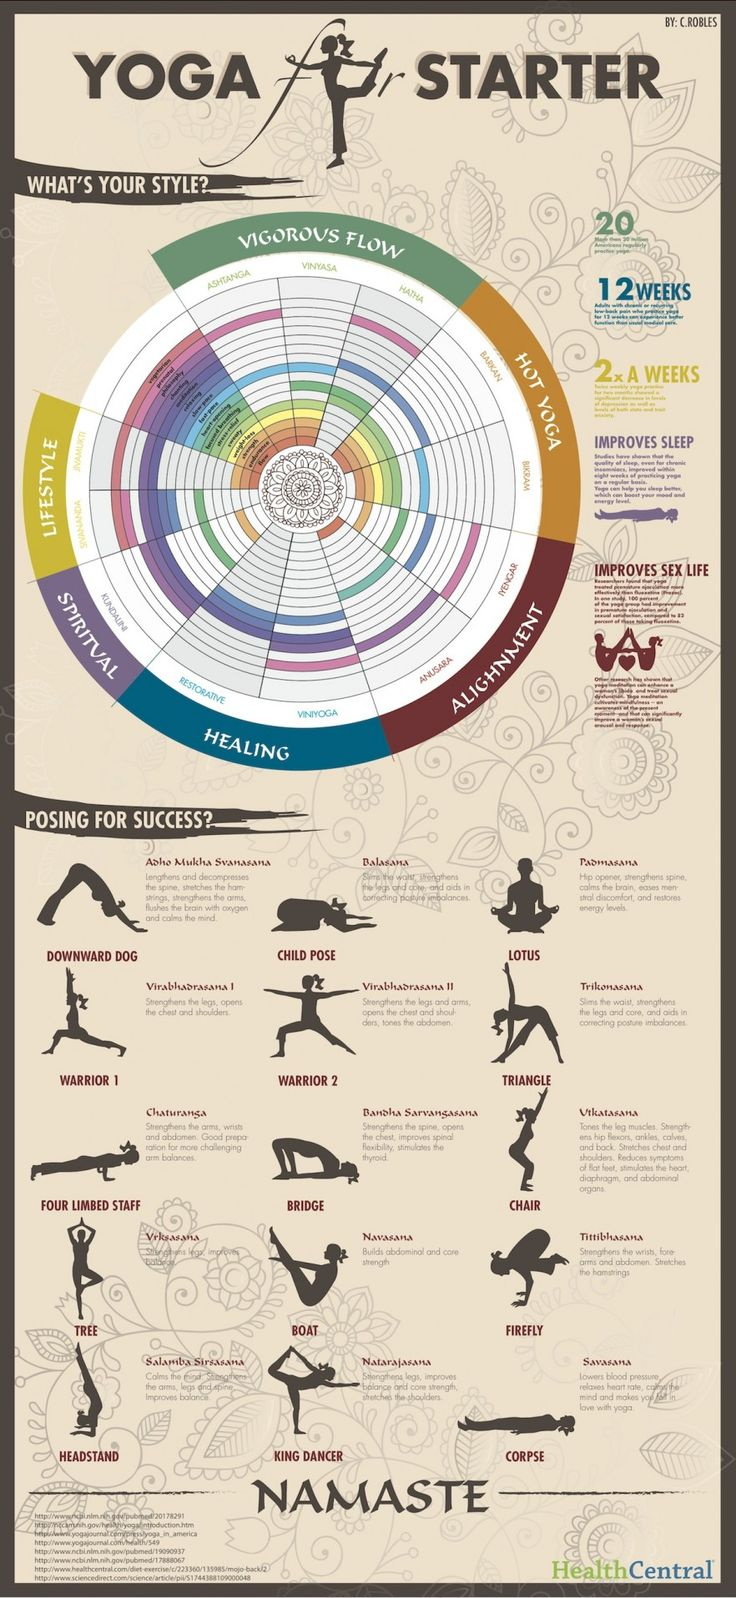 Yoga for Starters - Namaste | these are all very good poses for balance and flow of energy.